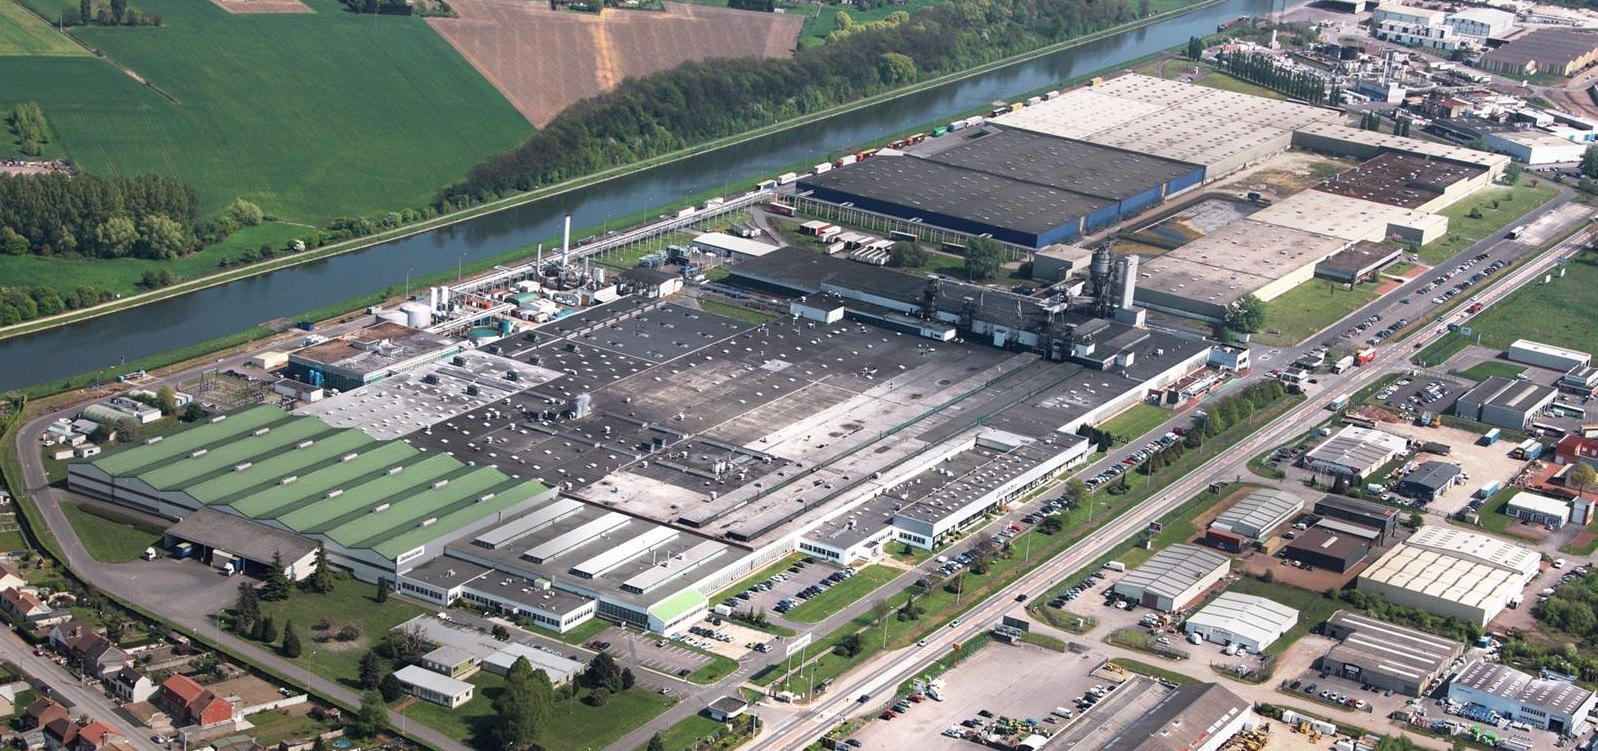 Bridgestone in talks with 2 tyremakers about Béthune factory sale